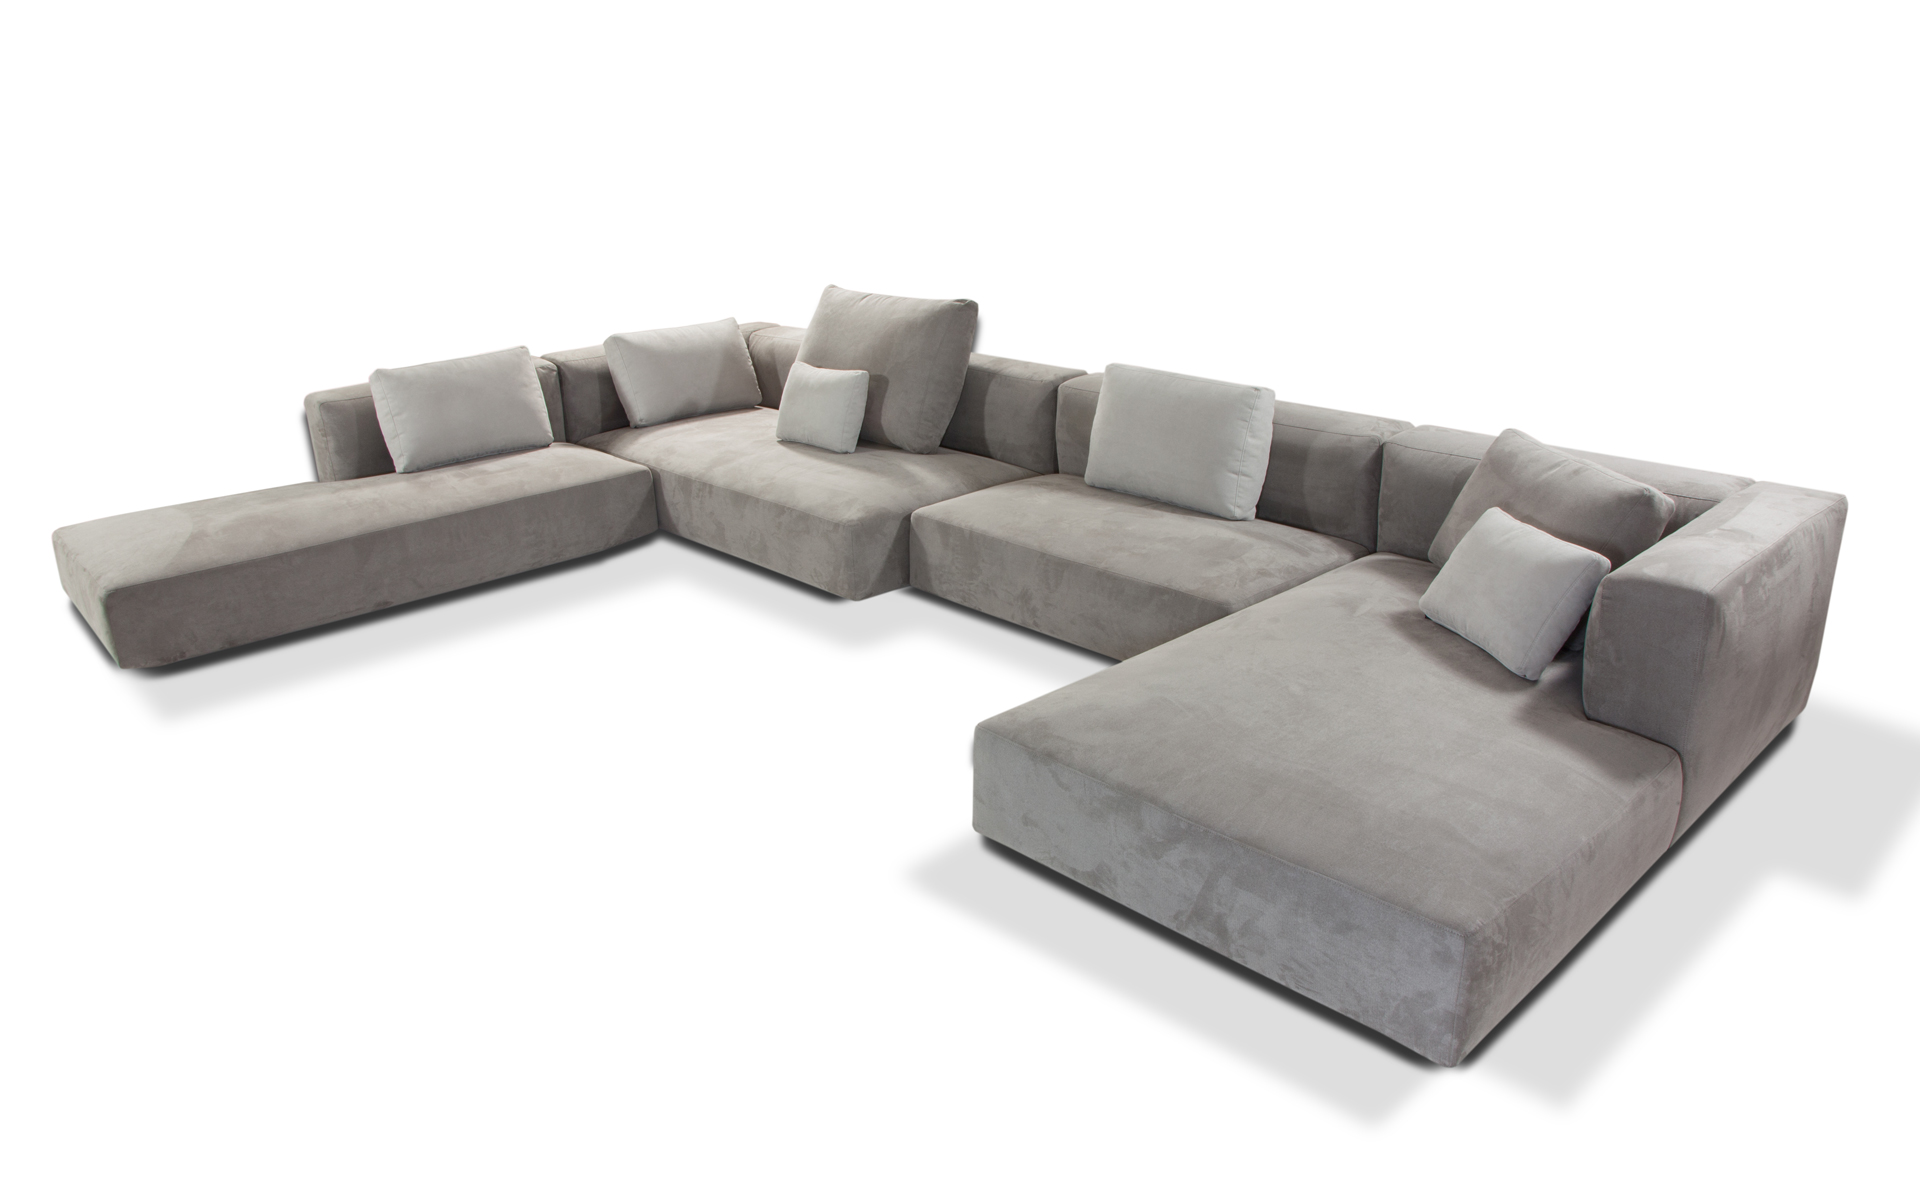 POLYGON sofa